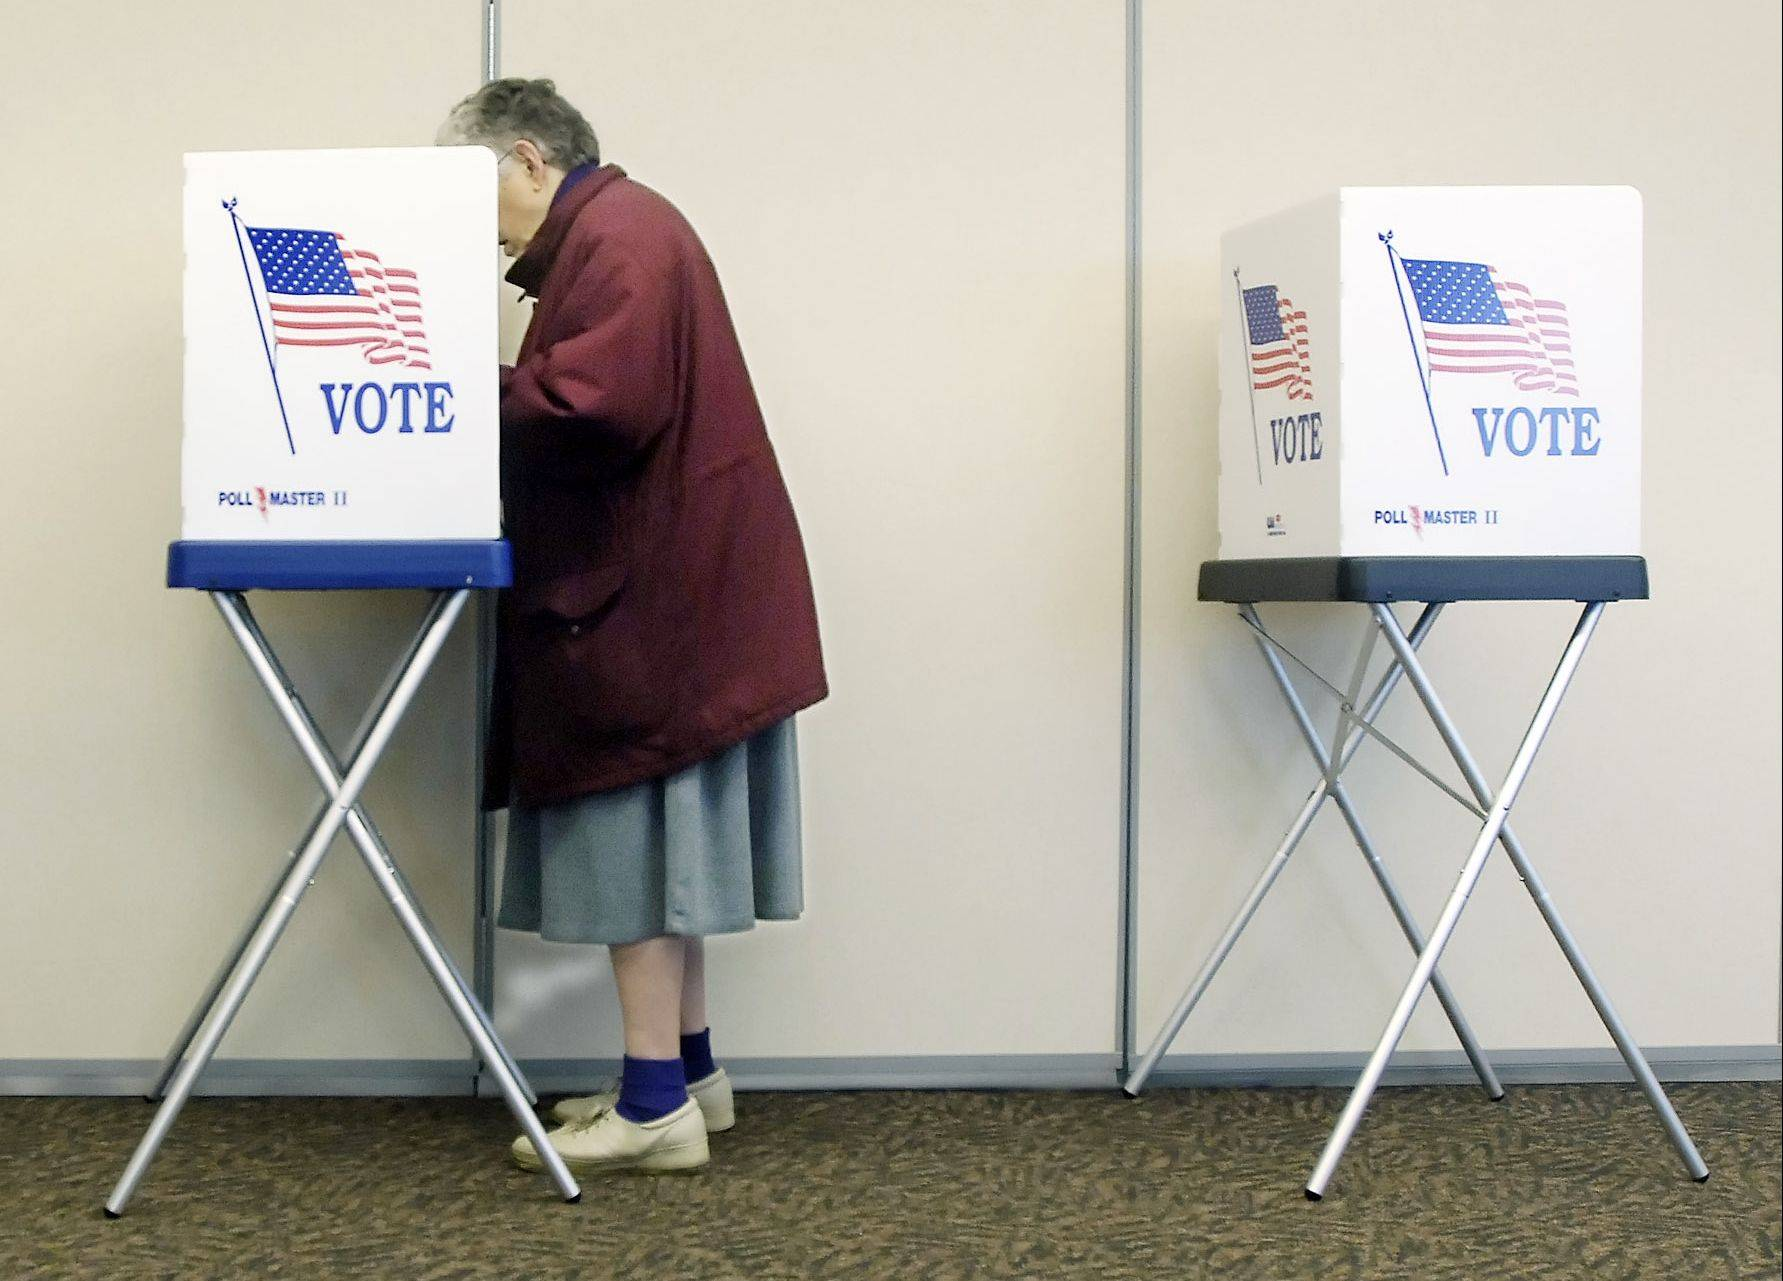 A Woodstock voter casts an early ballot.